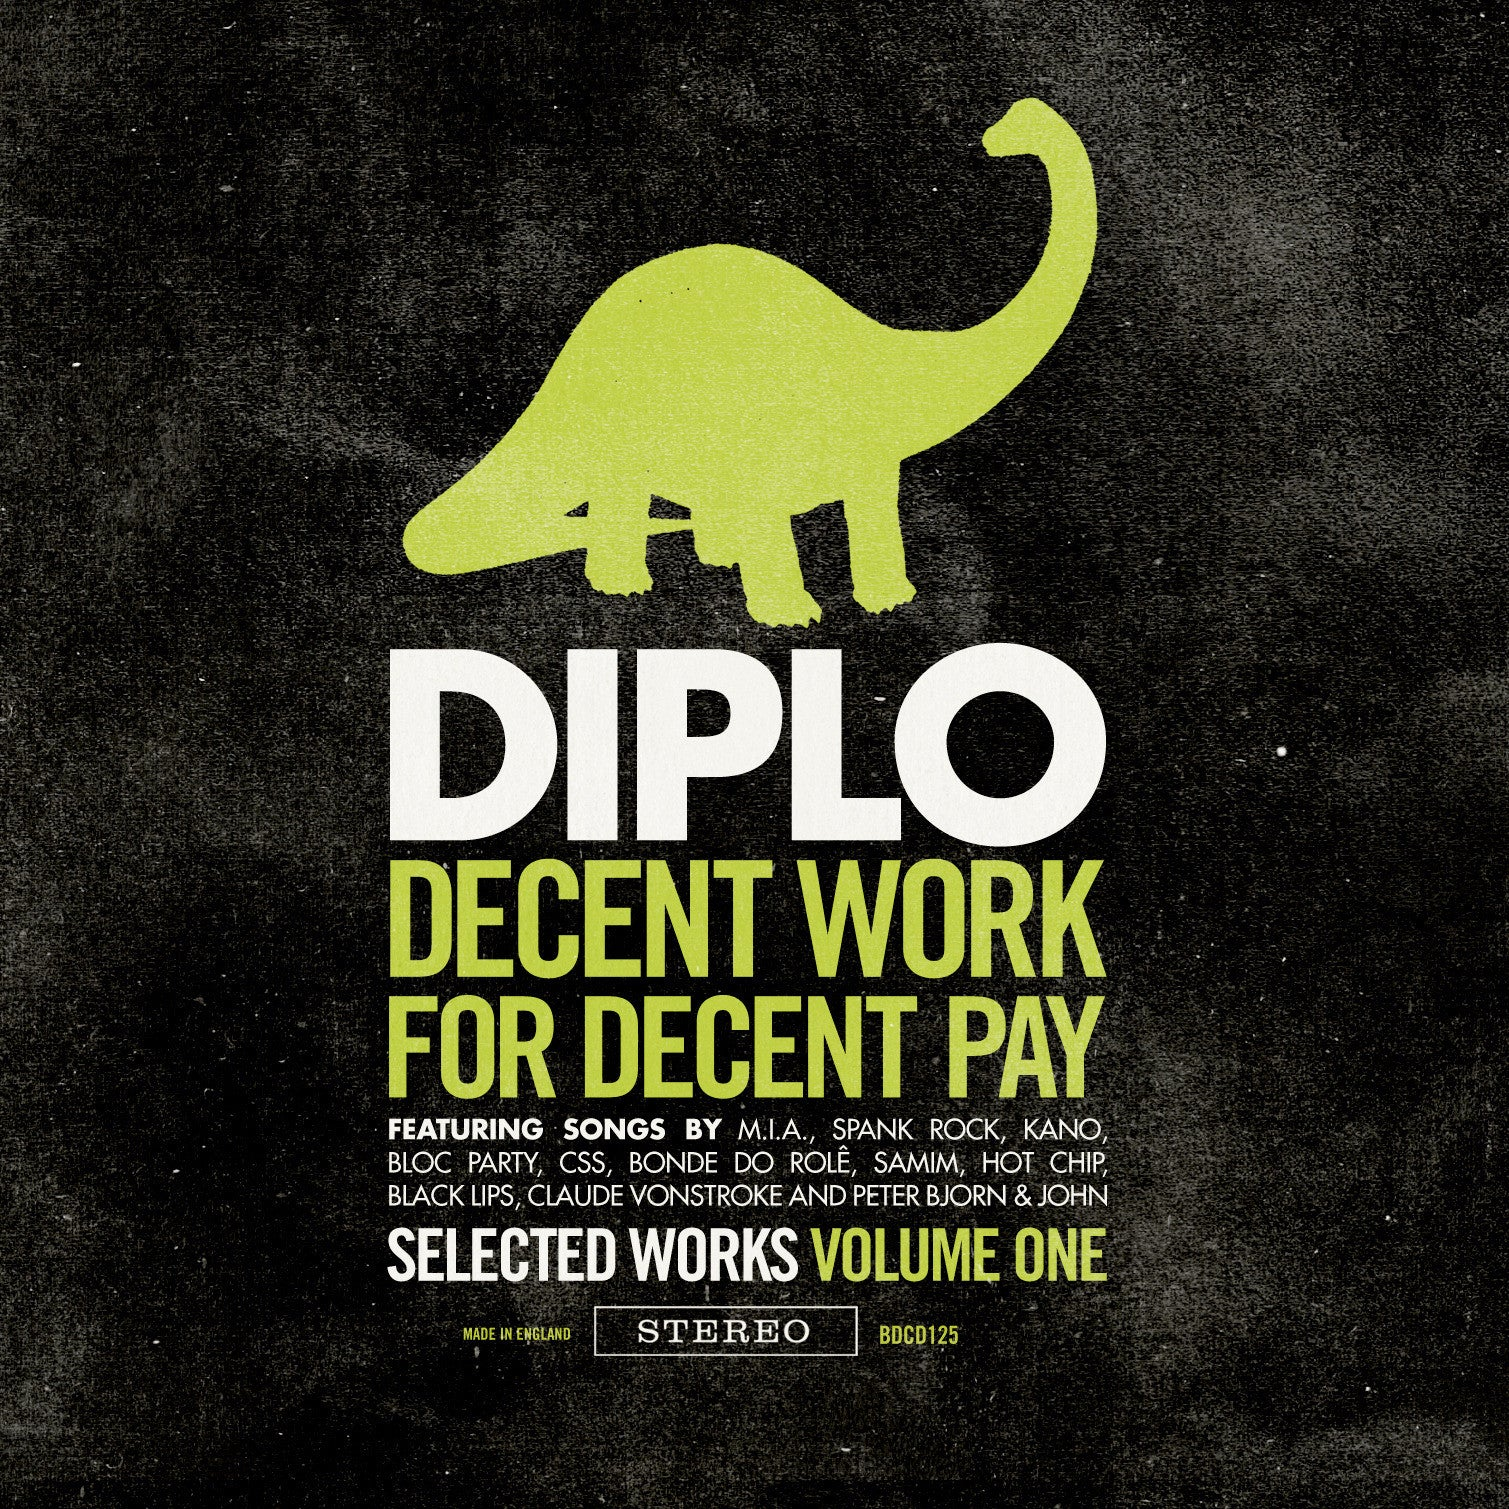 Diplo - Decent Work 4 Decent Pay, CD - The Giant Peach